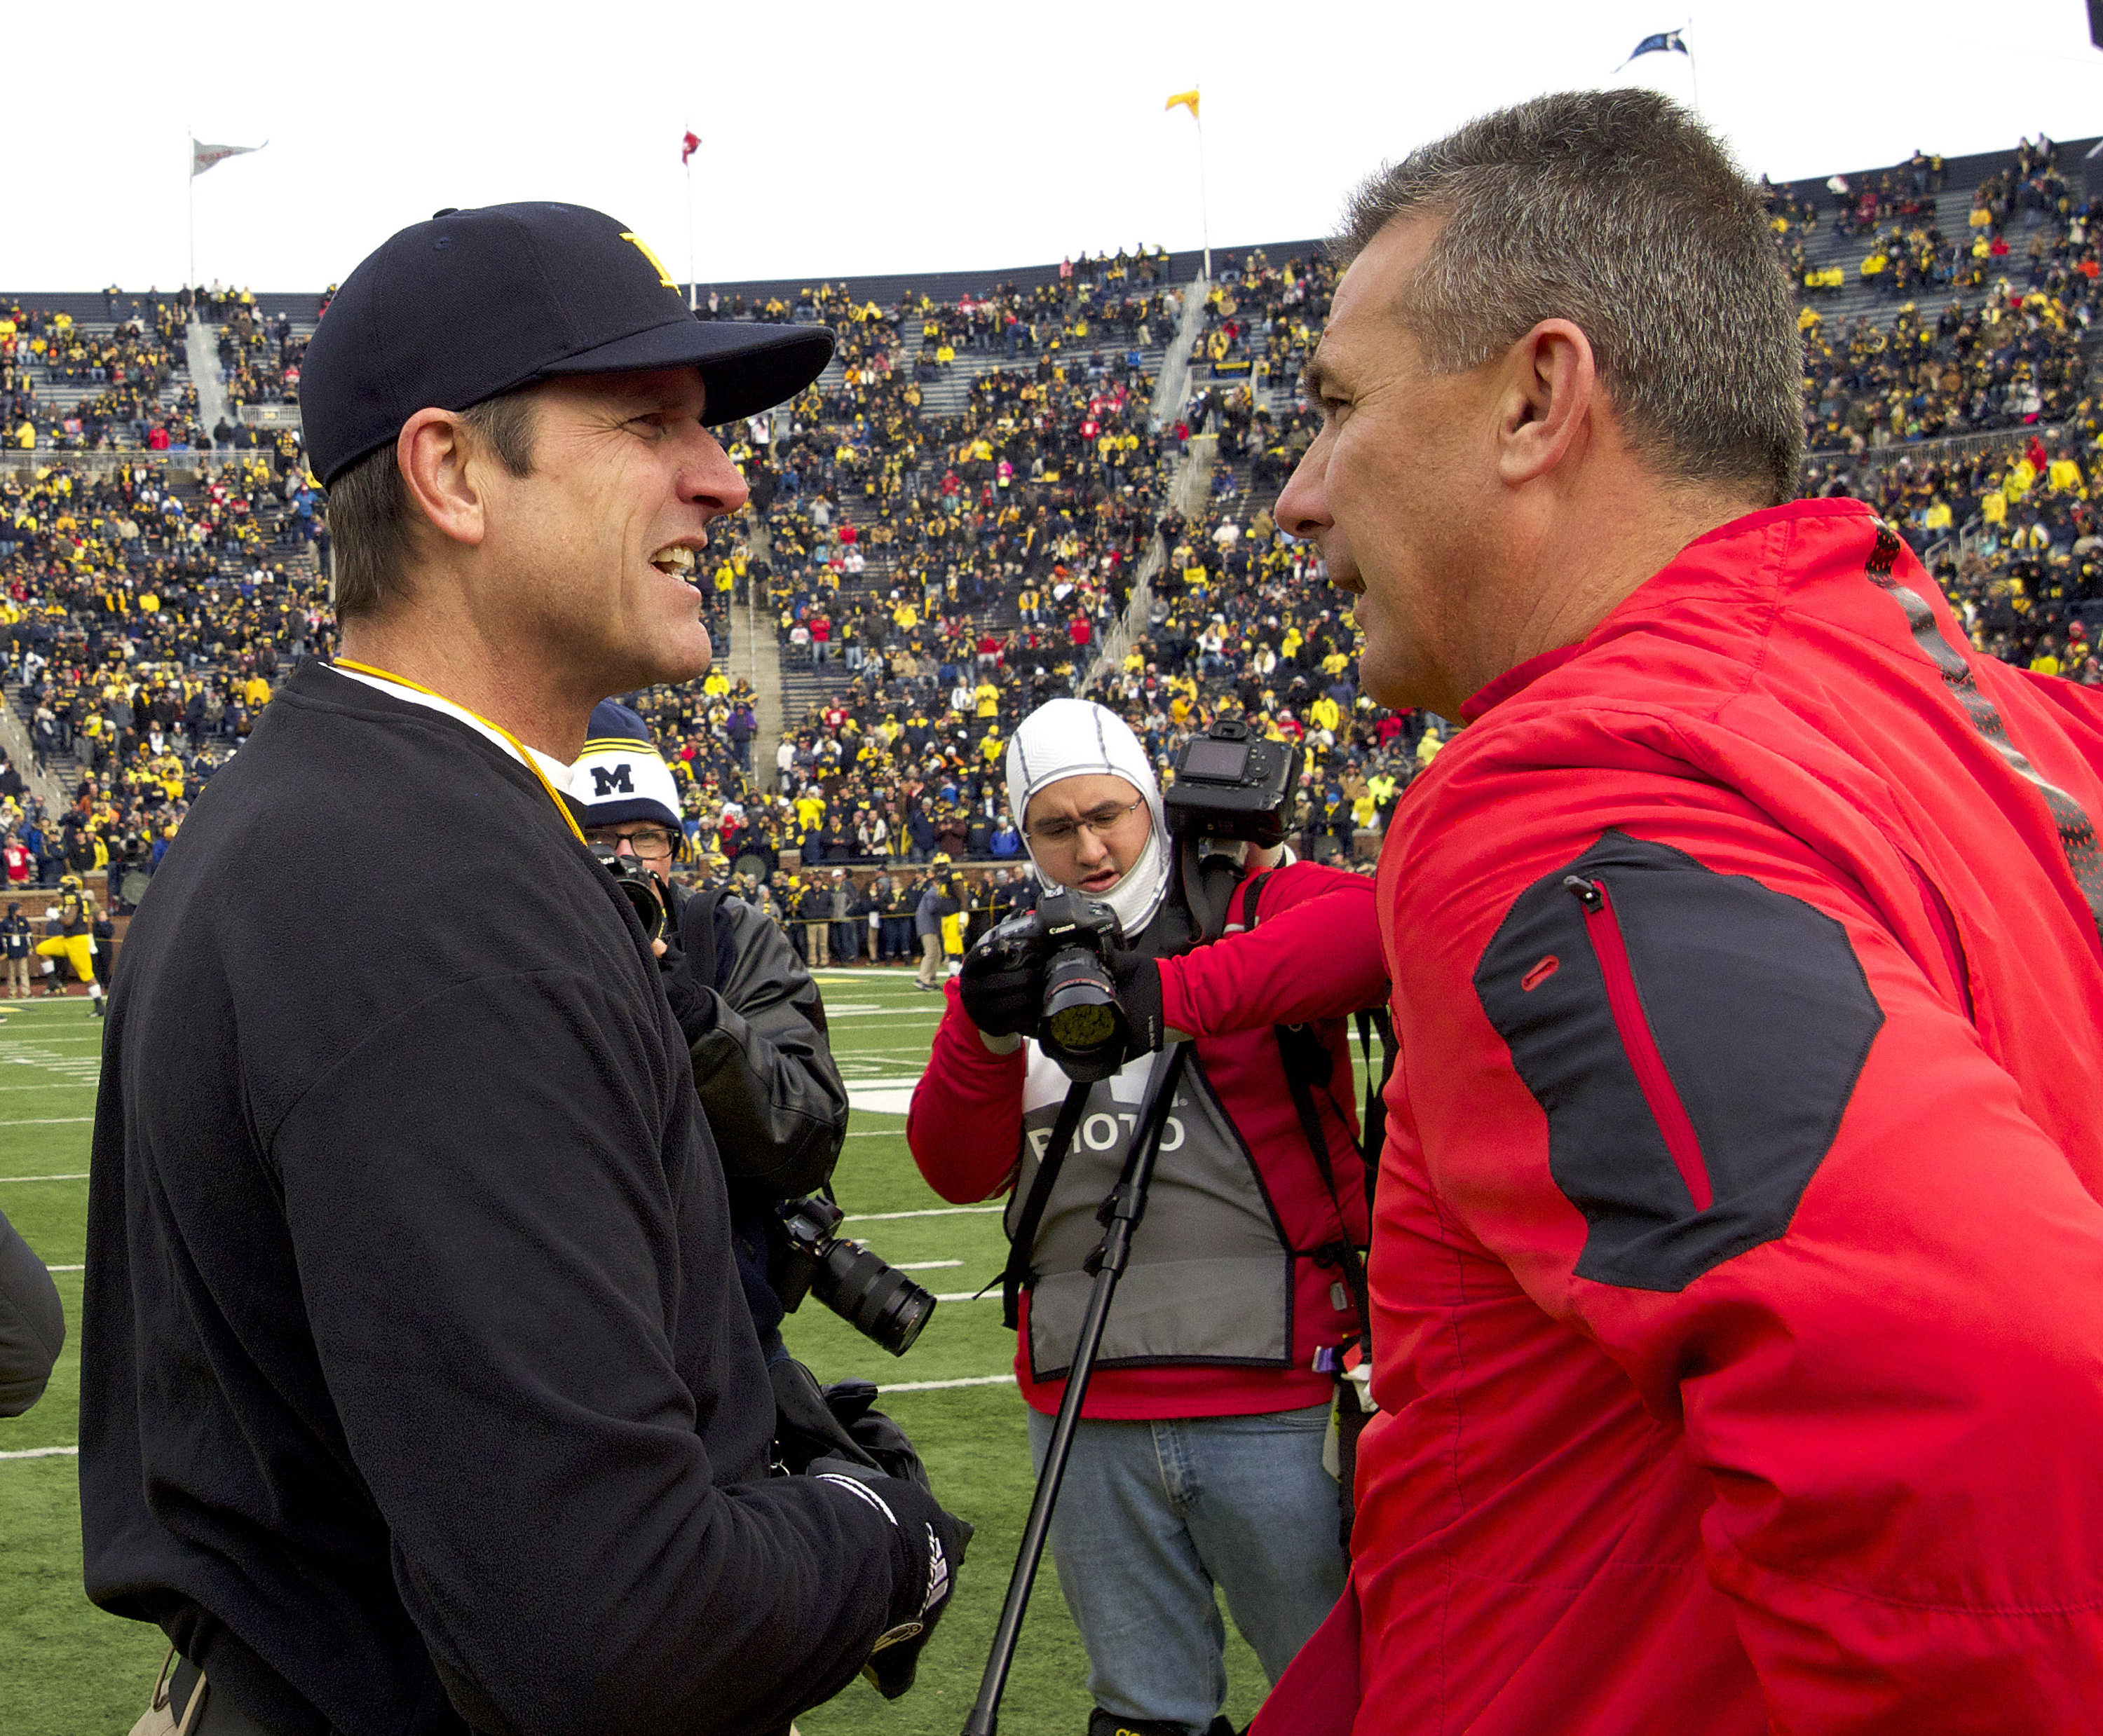 FILE - In this Nov. 28, 2015, file photo, Michigan head coach Jim Harbaugh, left, greets Ohio State head coach Urban Meyer on the Michigan Stadium field before an NCAA college football game in Ann Arbor, Mich. Harbaugh hopes to help Michigan upset Ohio St